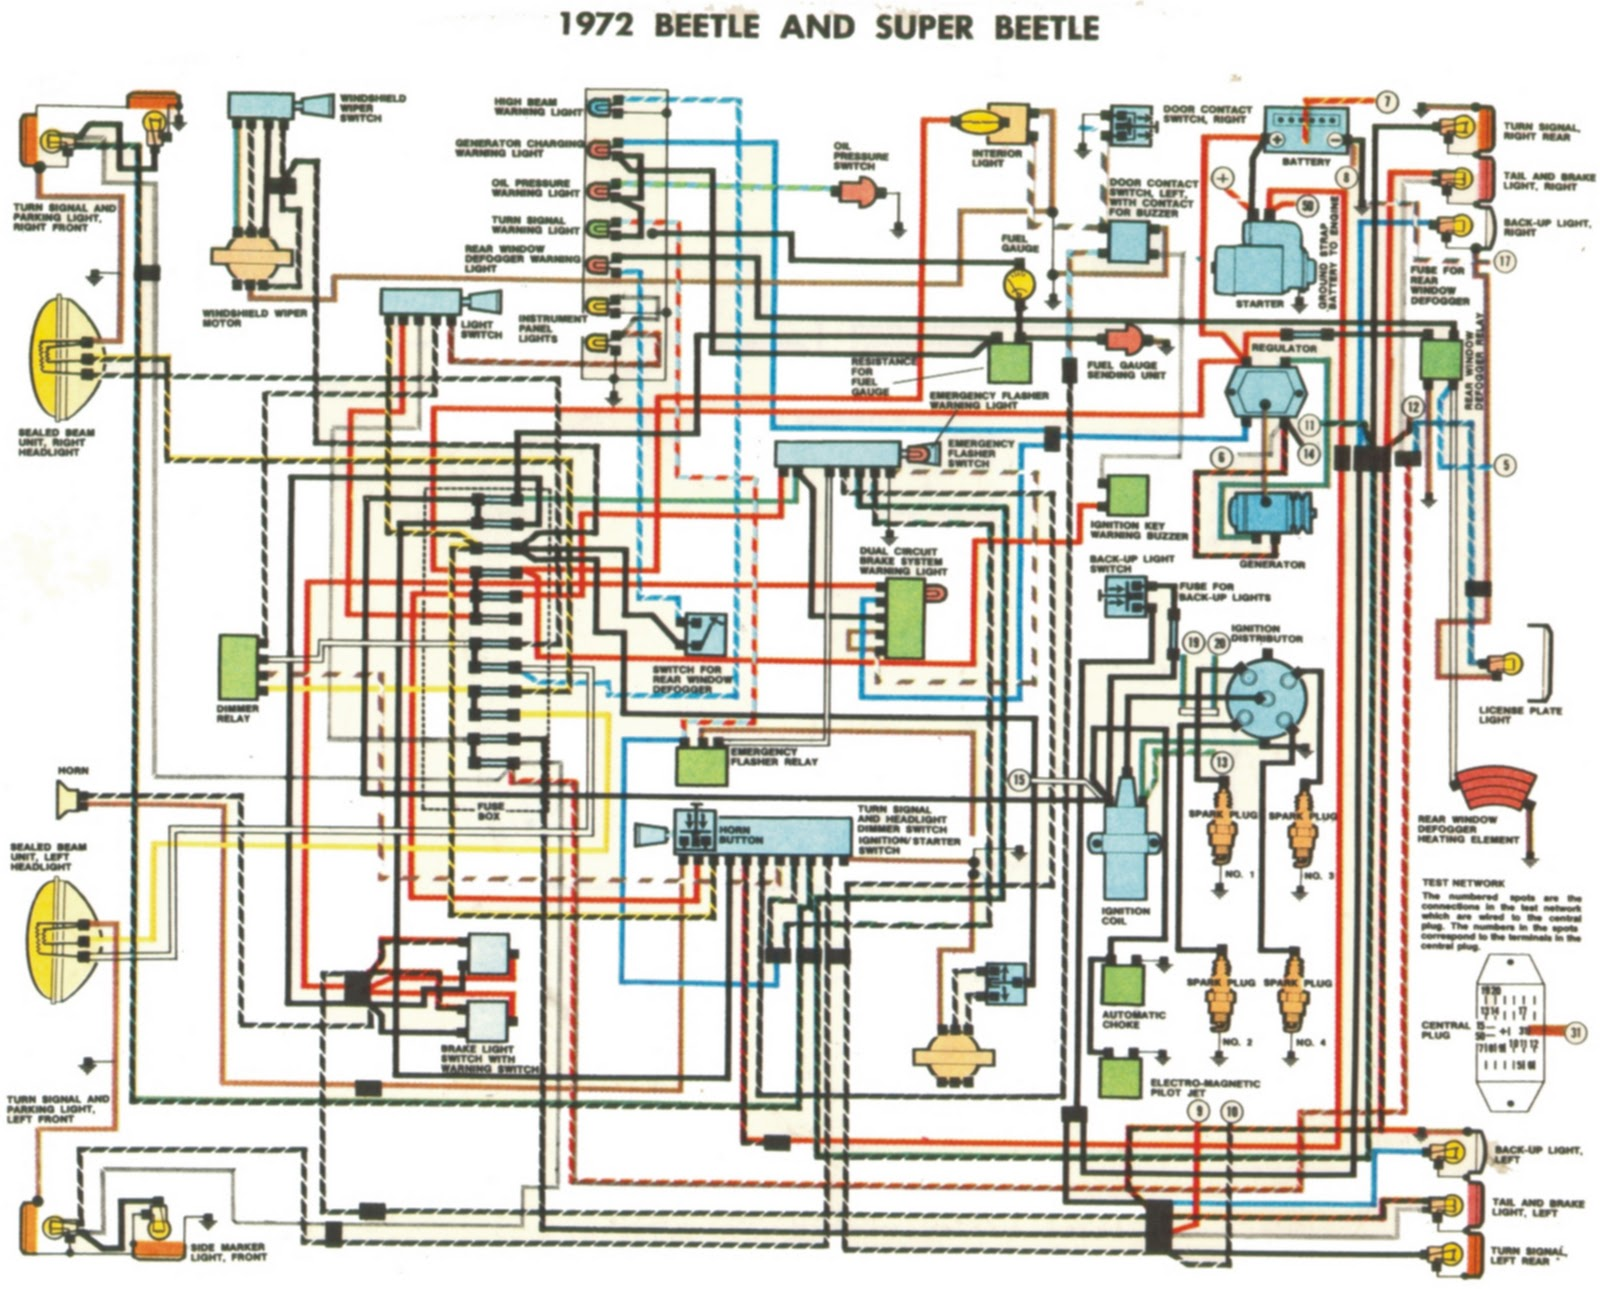 1972 beetle and super beetle wiring diagrams wiring diagram for 1971 vw beetle readingrat net 73 vw beetle wiring diagram at nearapp.co